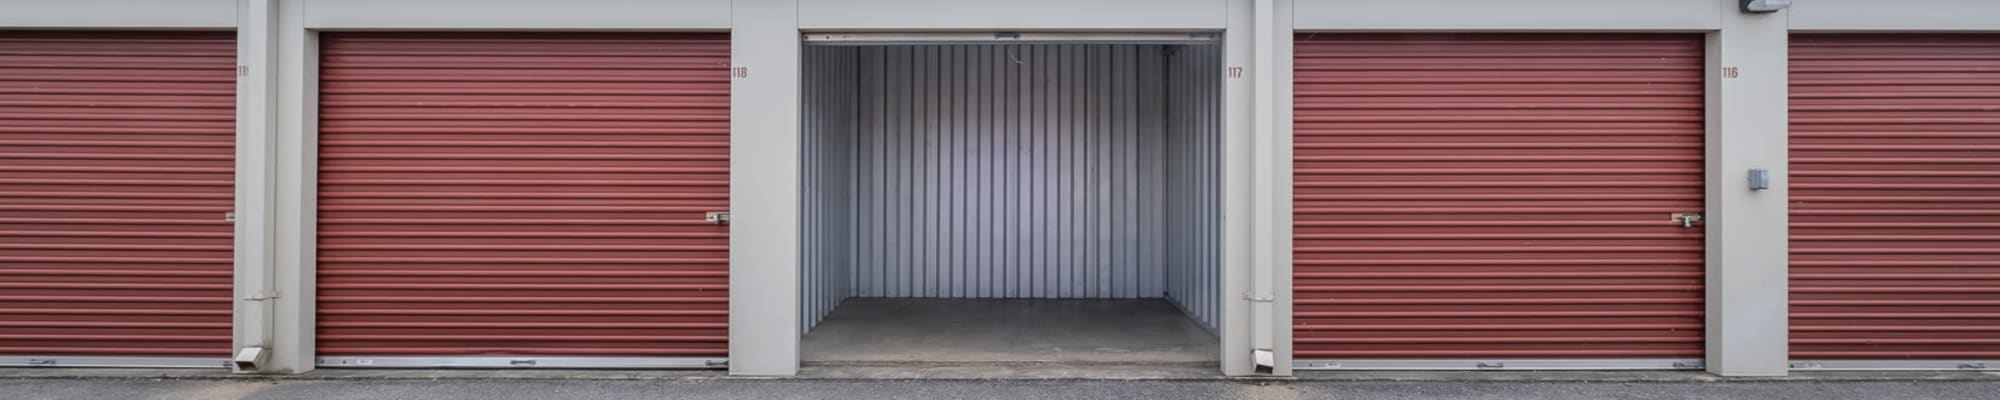 Photos of Apperson Self Storage 2